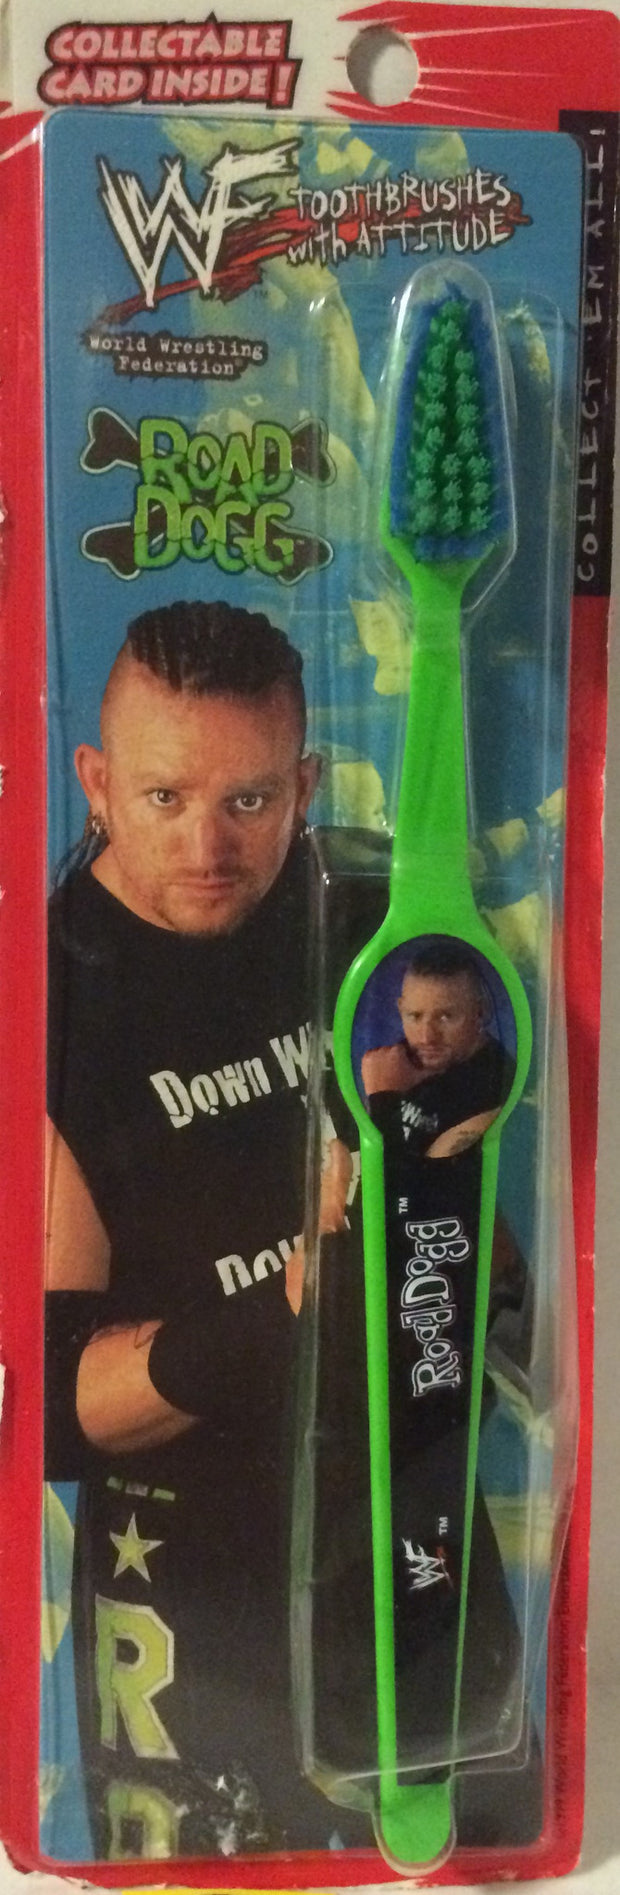 (TAS004753) - 1999 WWF WWE Wrestling Toothbrush - Road Dogg (DX), , Bath, Wrestling, The Angry Spider Vintage Toys & Collectibles Store